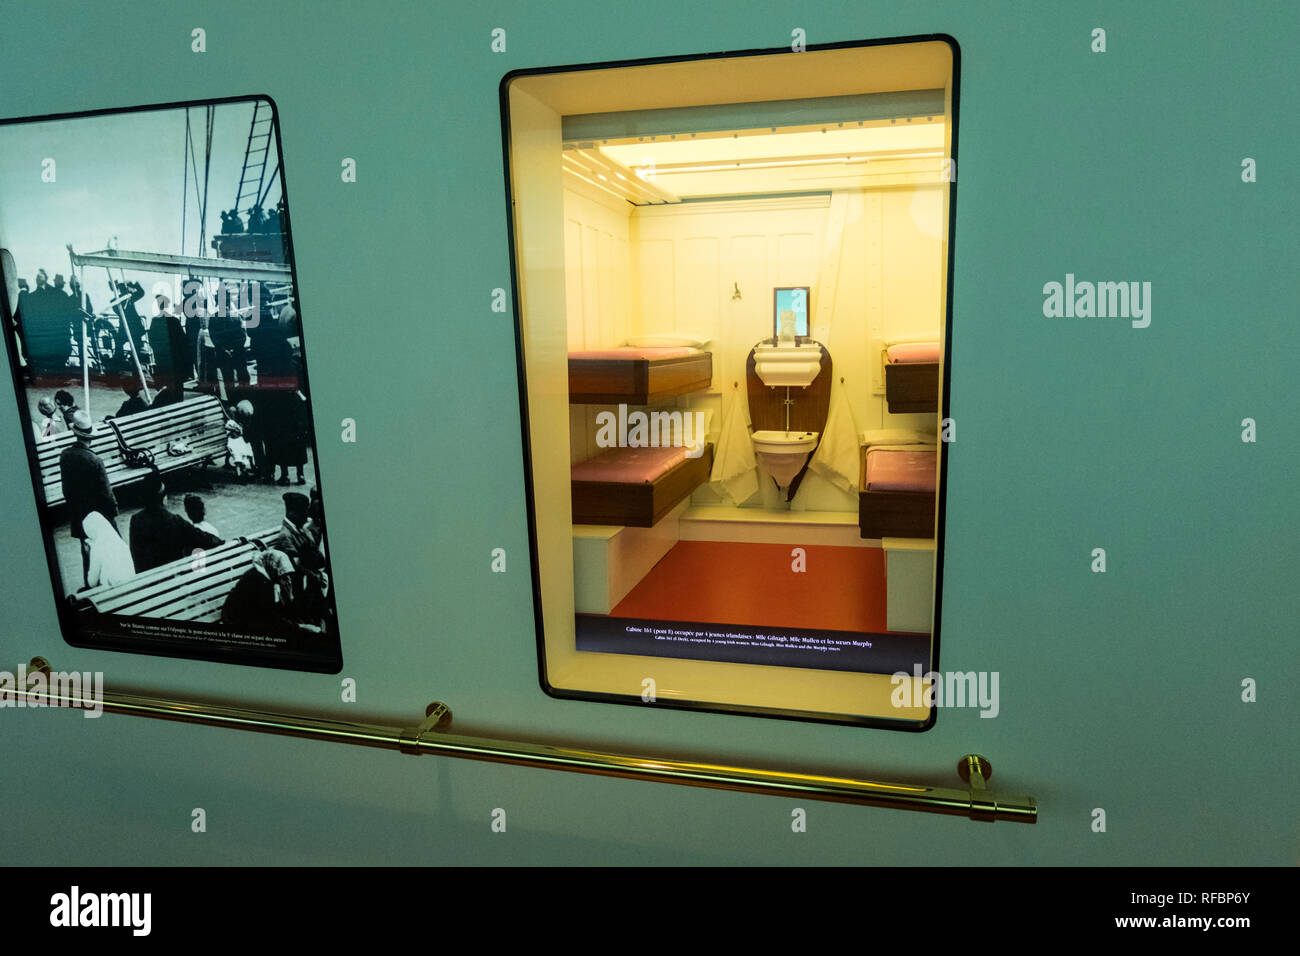 Cherbourg-Octeville, France - August 26, 2018: Mockup of the 3rd class cabin of the Titanic at the Cite de la Mer museum of Cherbourg, France. - Stock Image